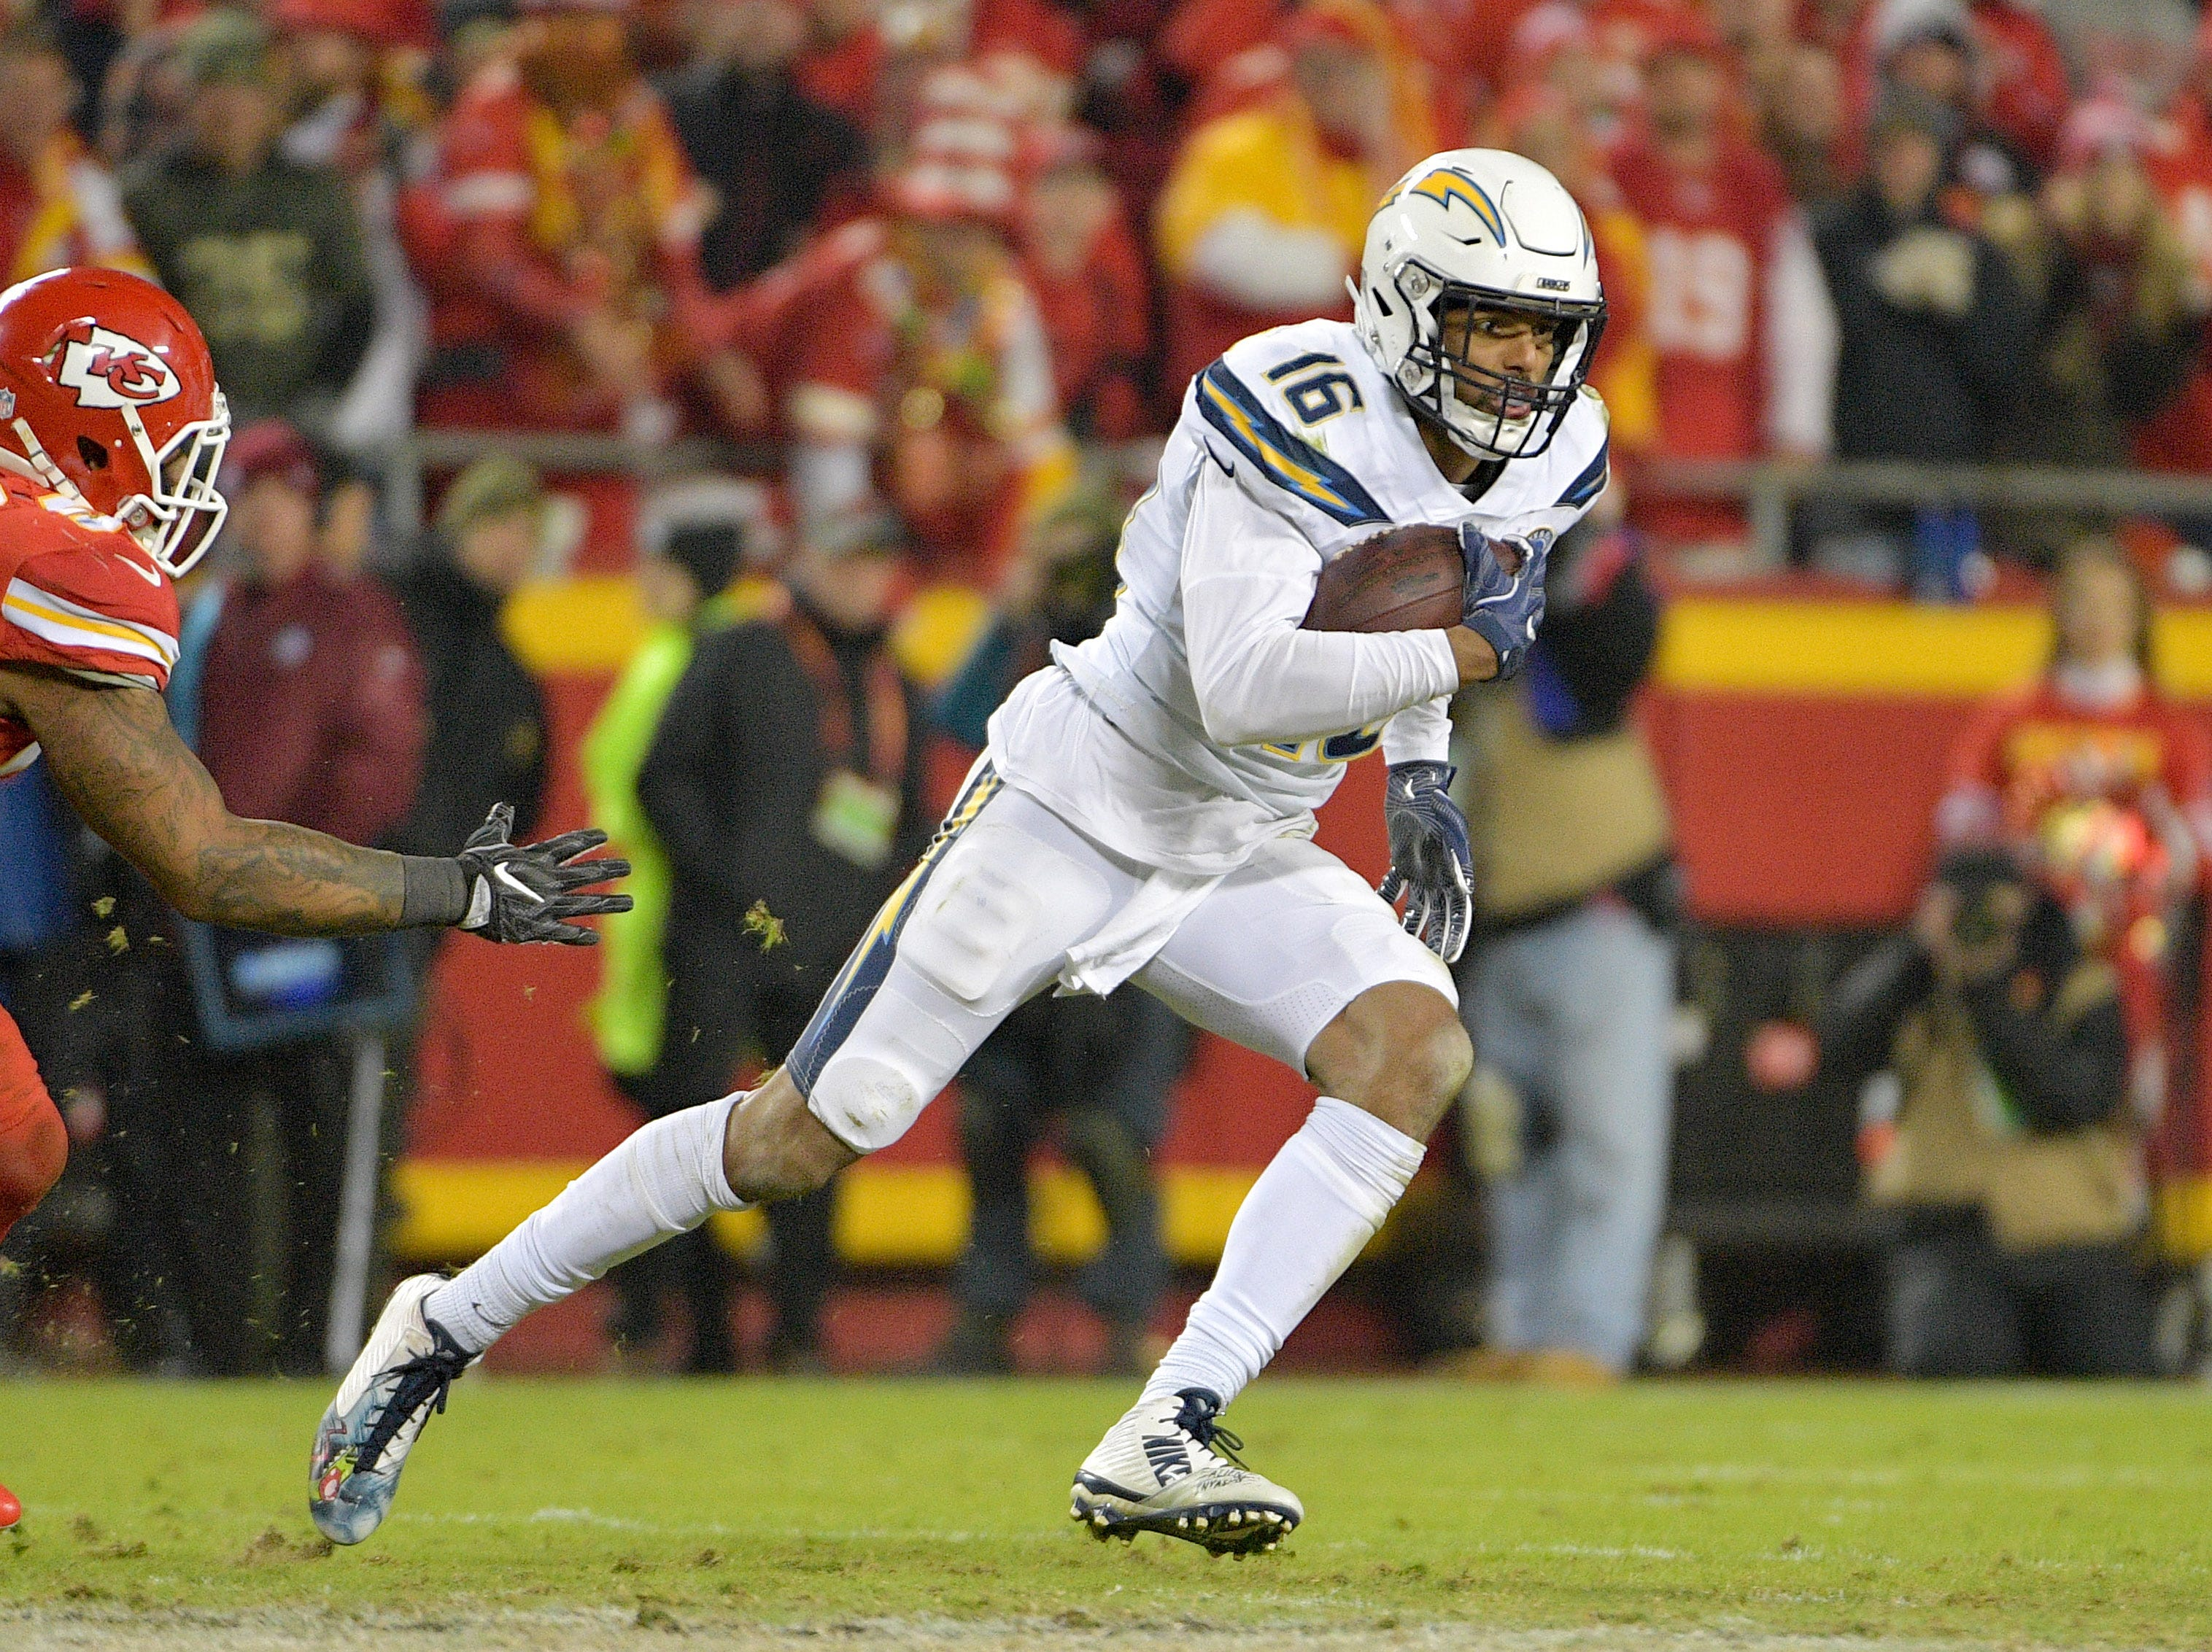 19. Tyrell Williams, WR, Chargers: Agreed to deal with Raiders